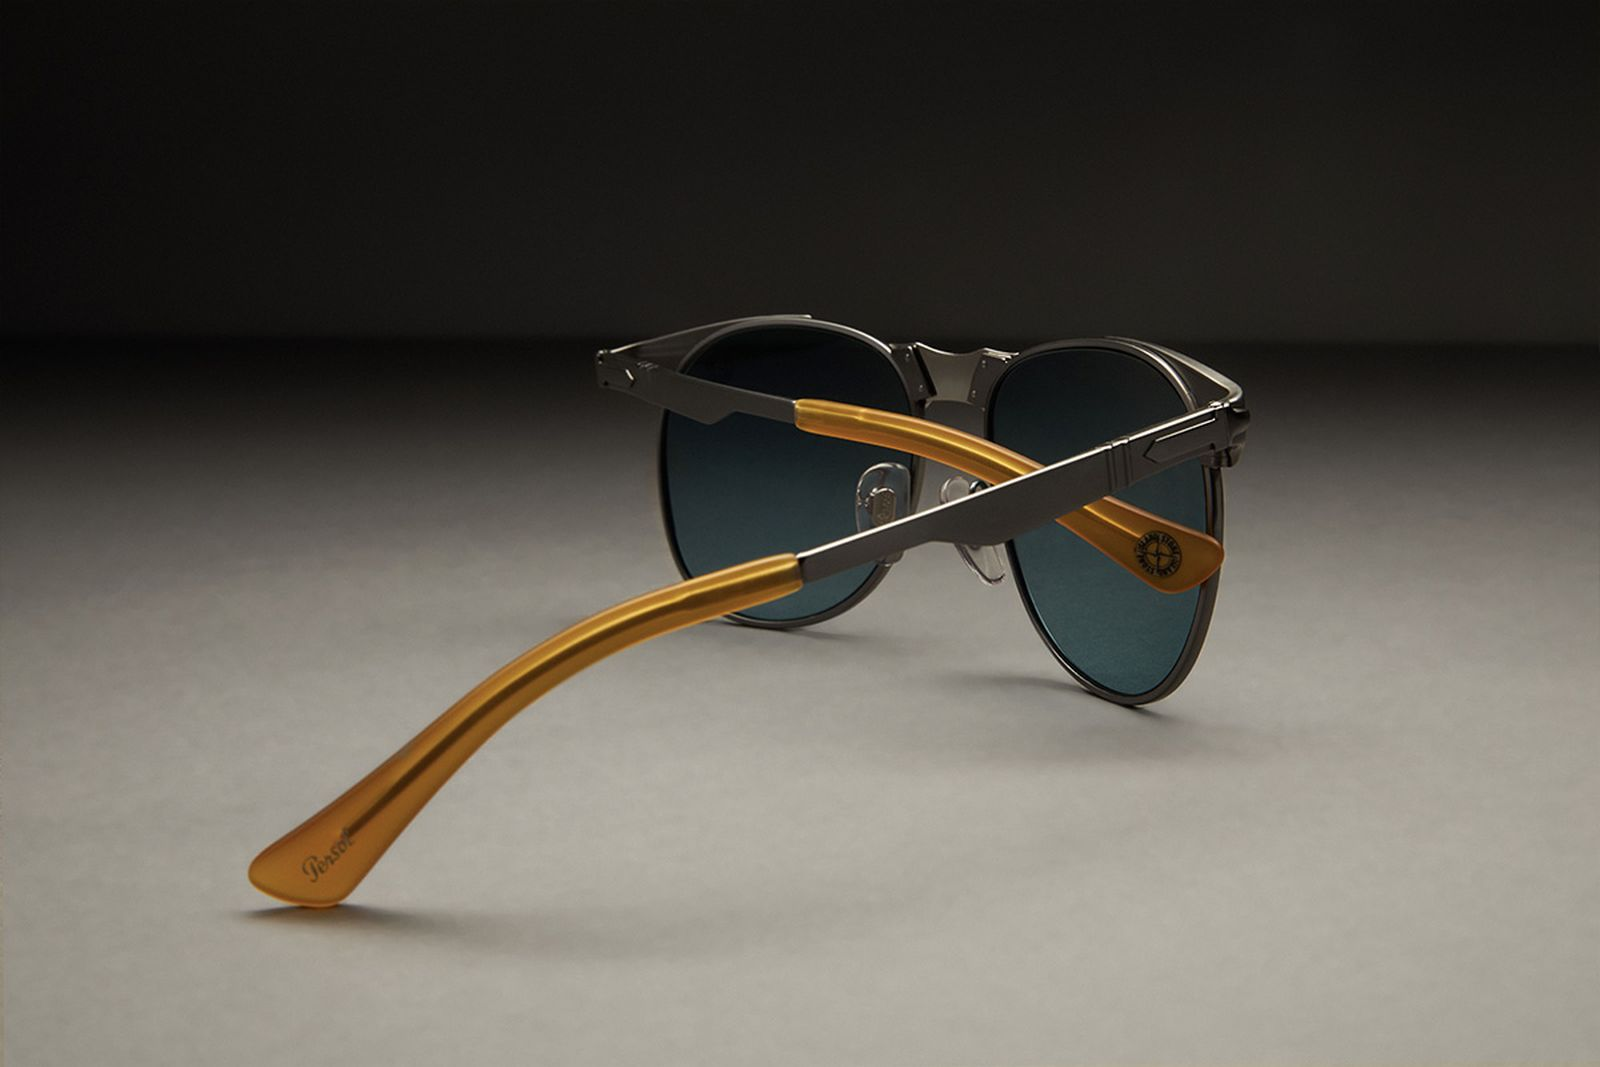 Persol x Stone Island Pilot Frame